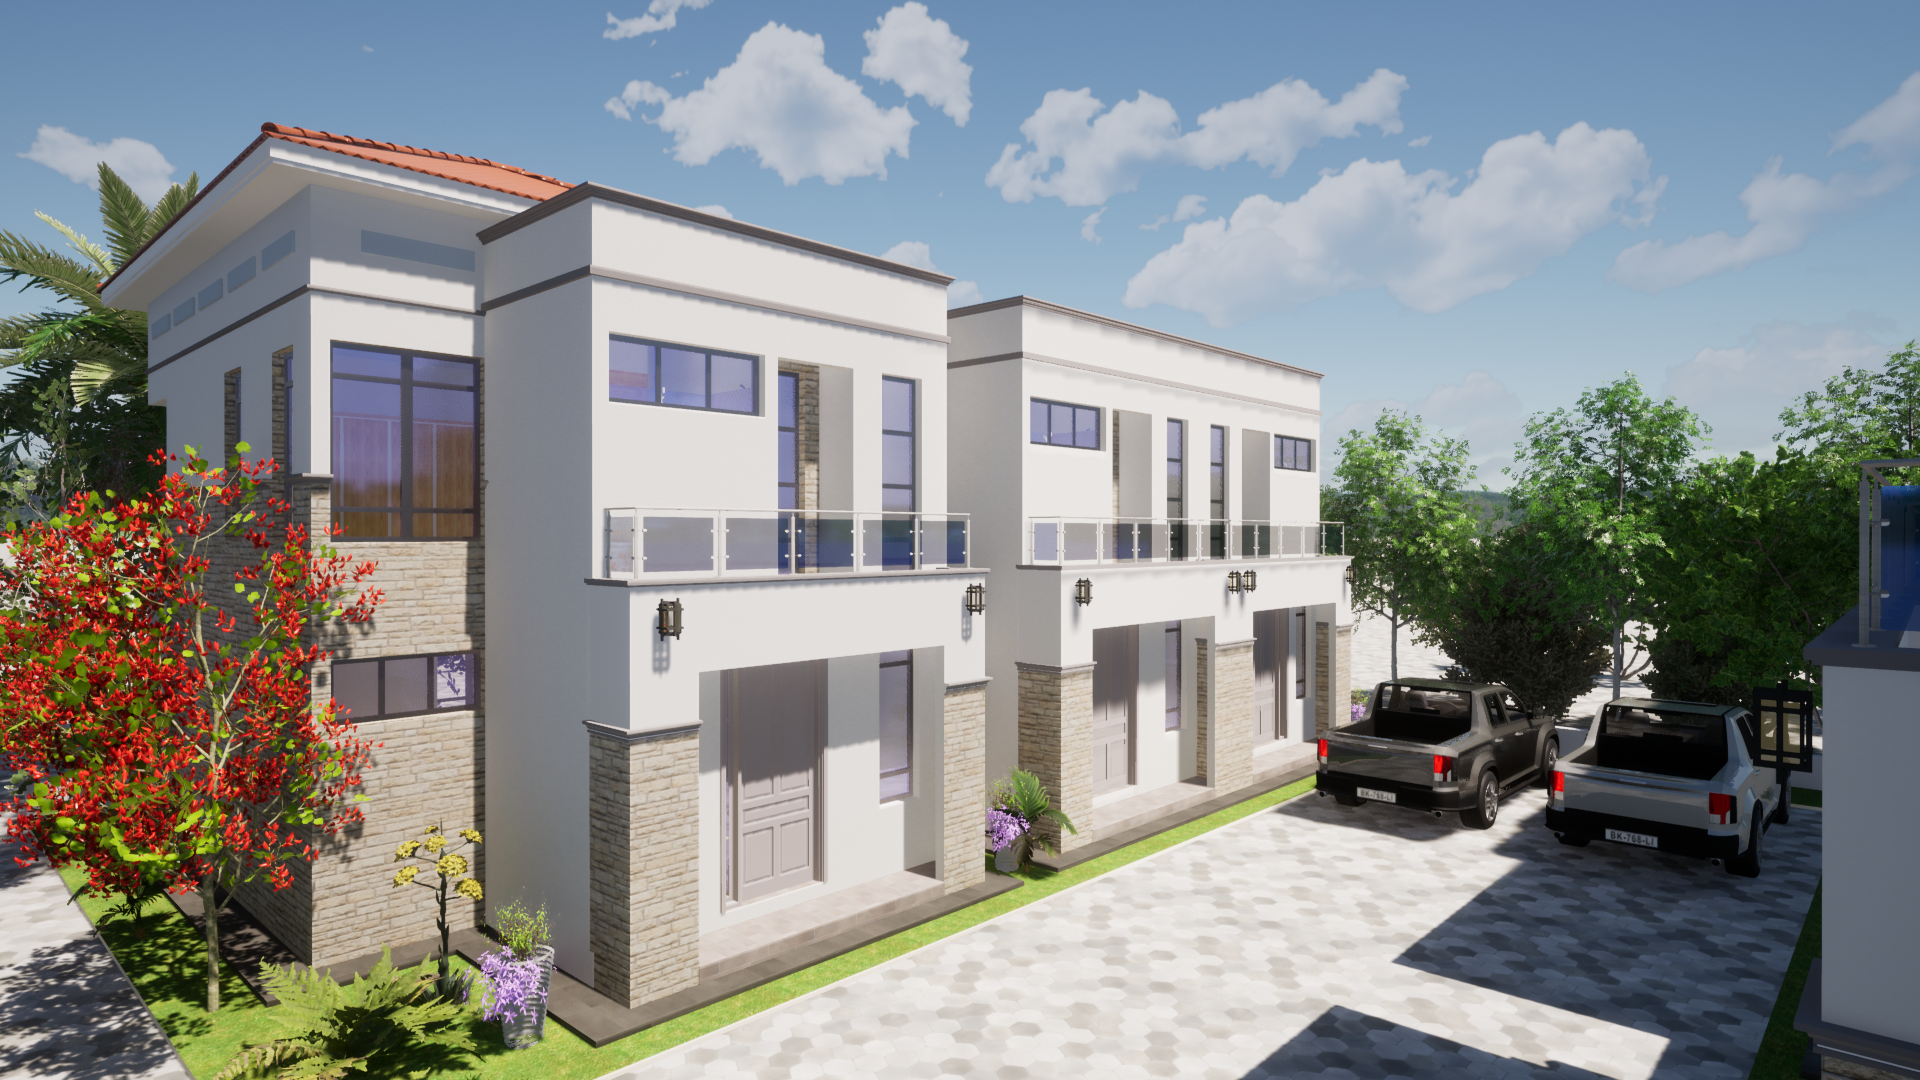 PROPOSED 6 TWO BEDROOM MAISONETTE